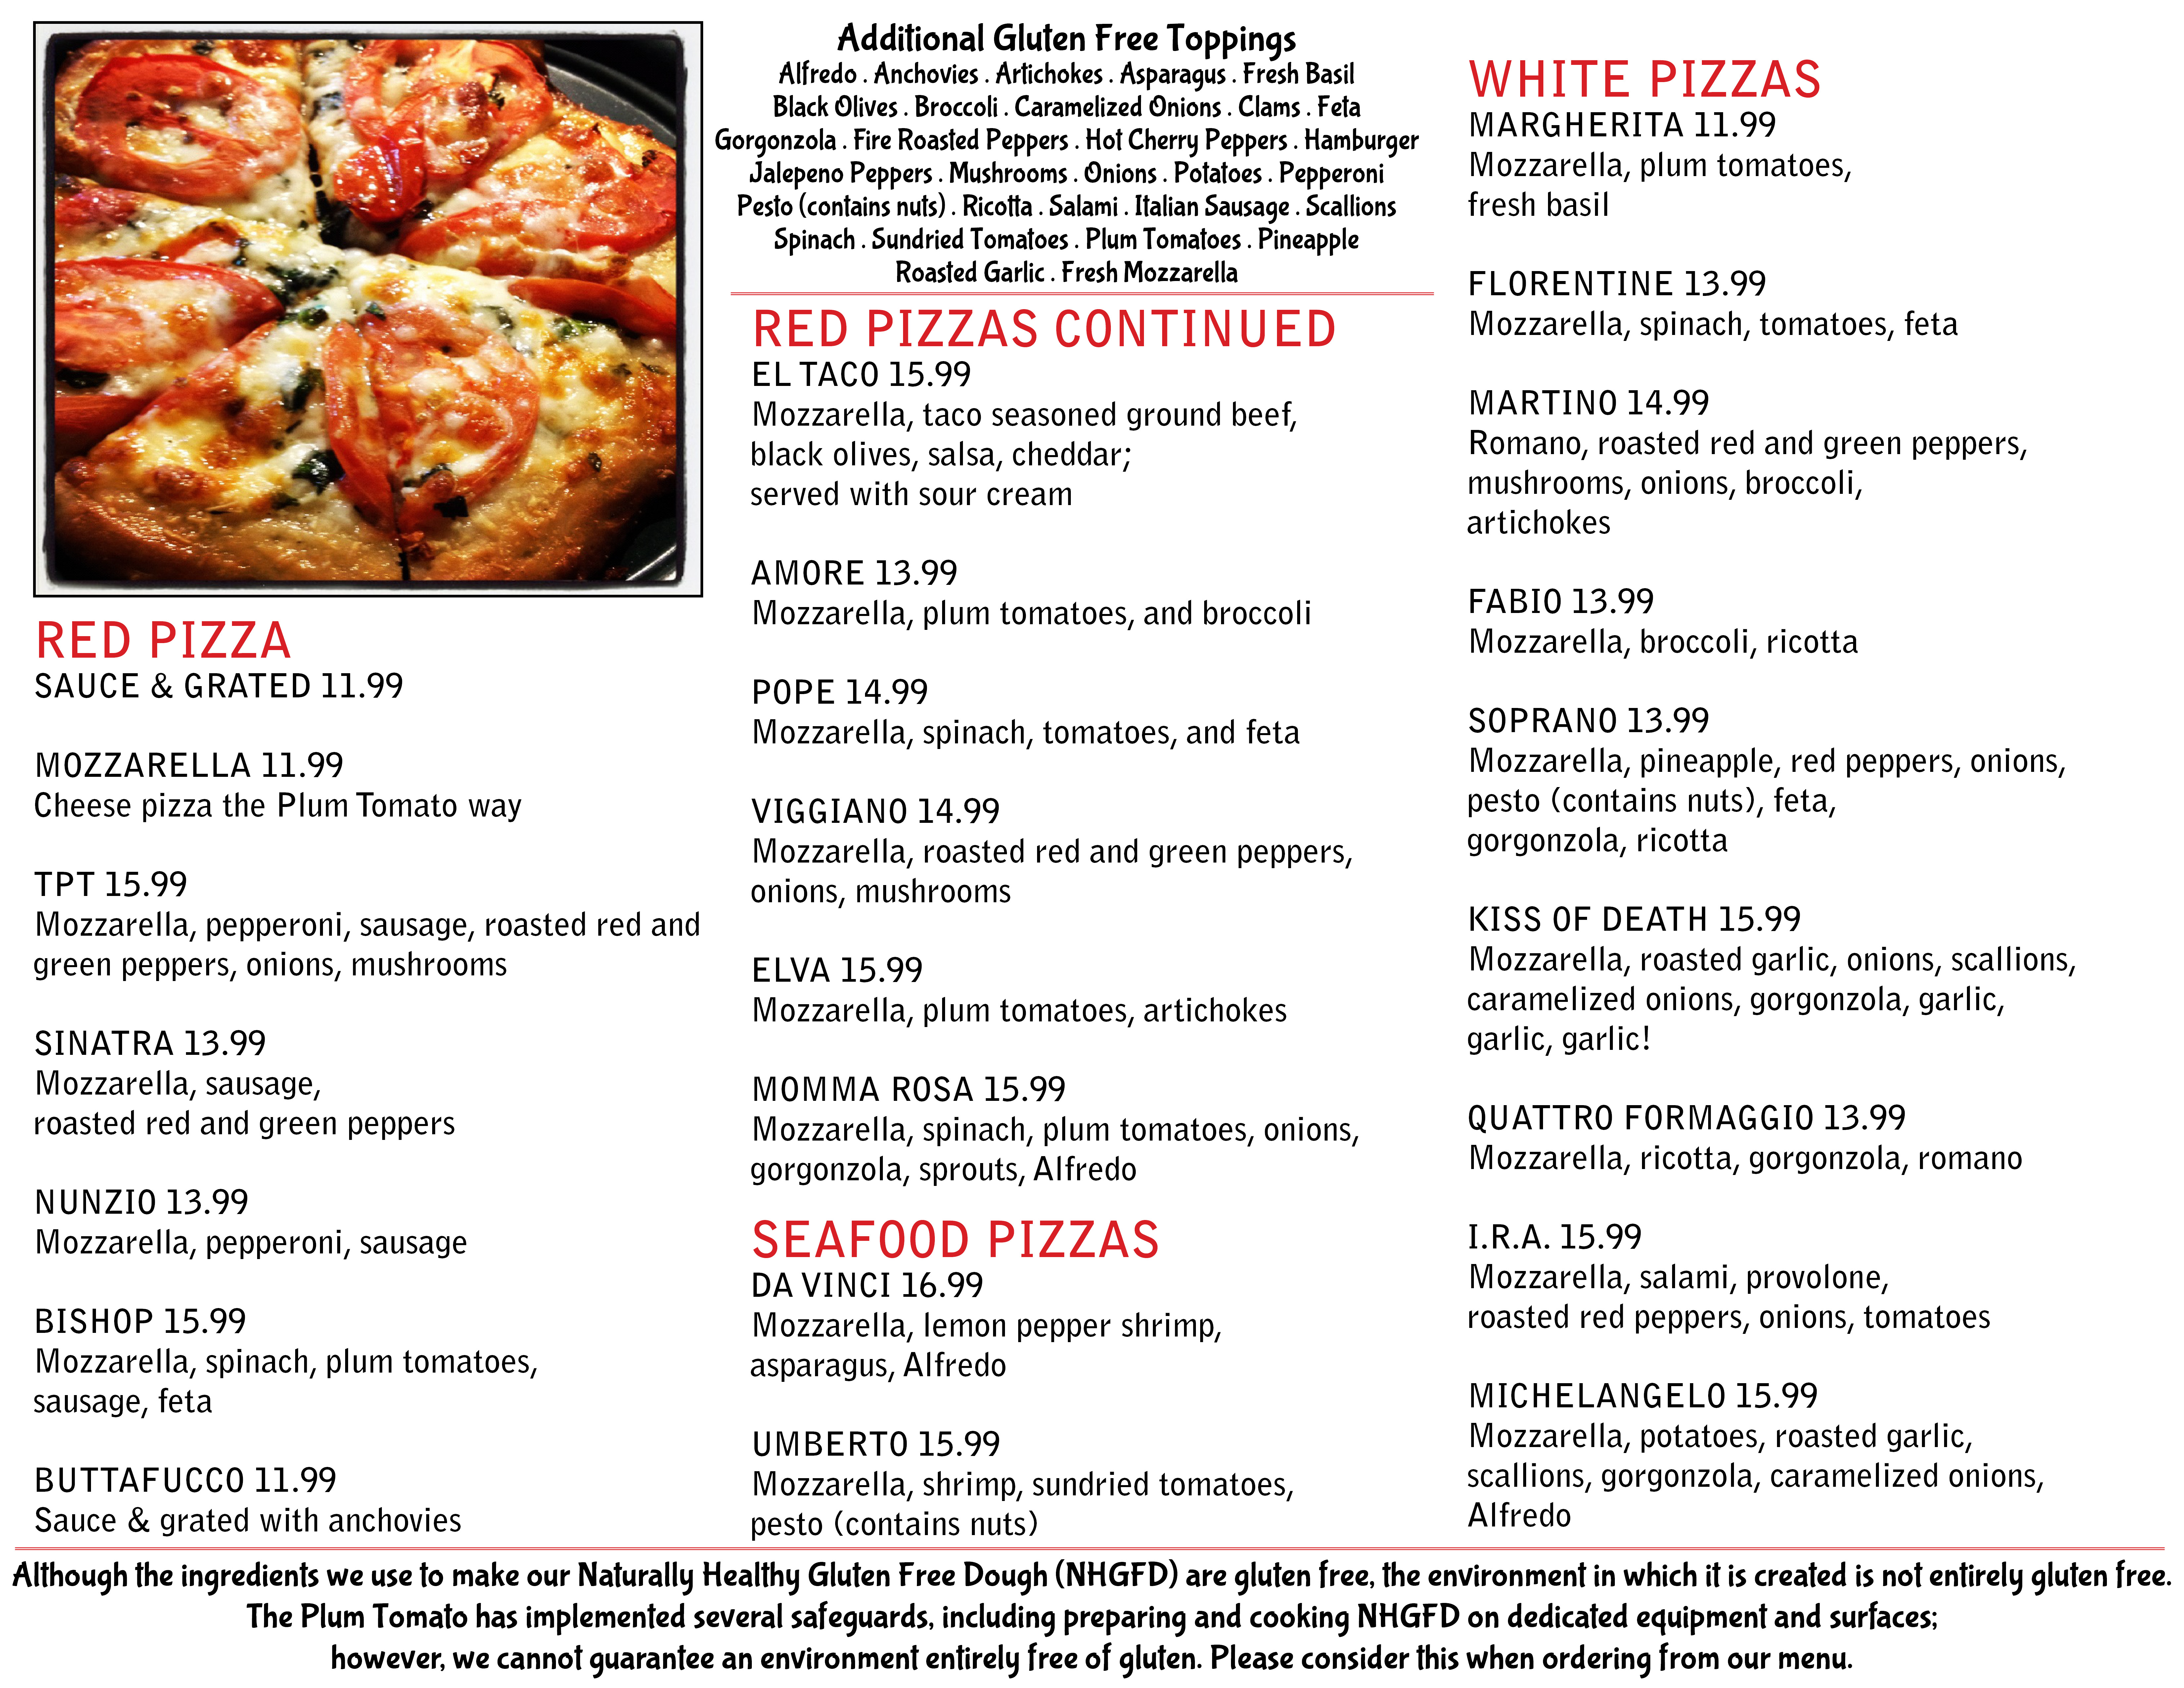 Gluten Free Menu Second Revision Side 2